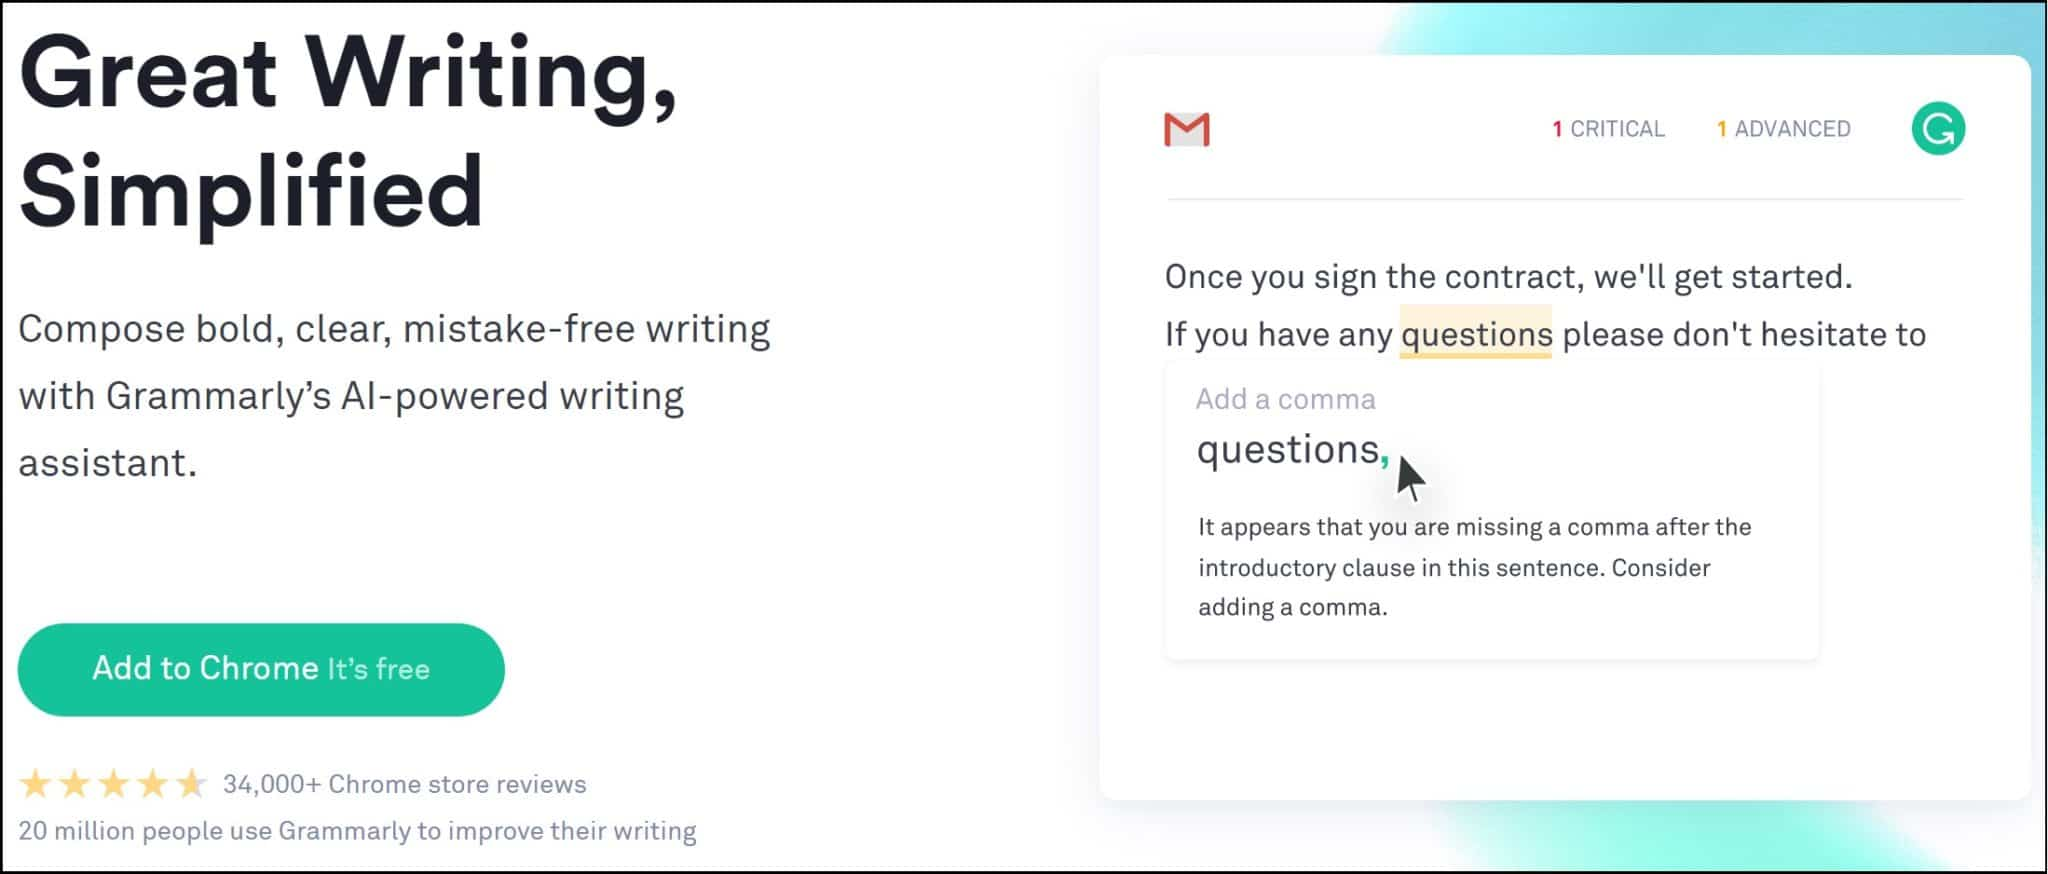 Add Grammarly Chrome extension